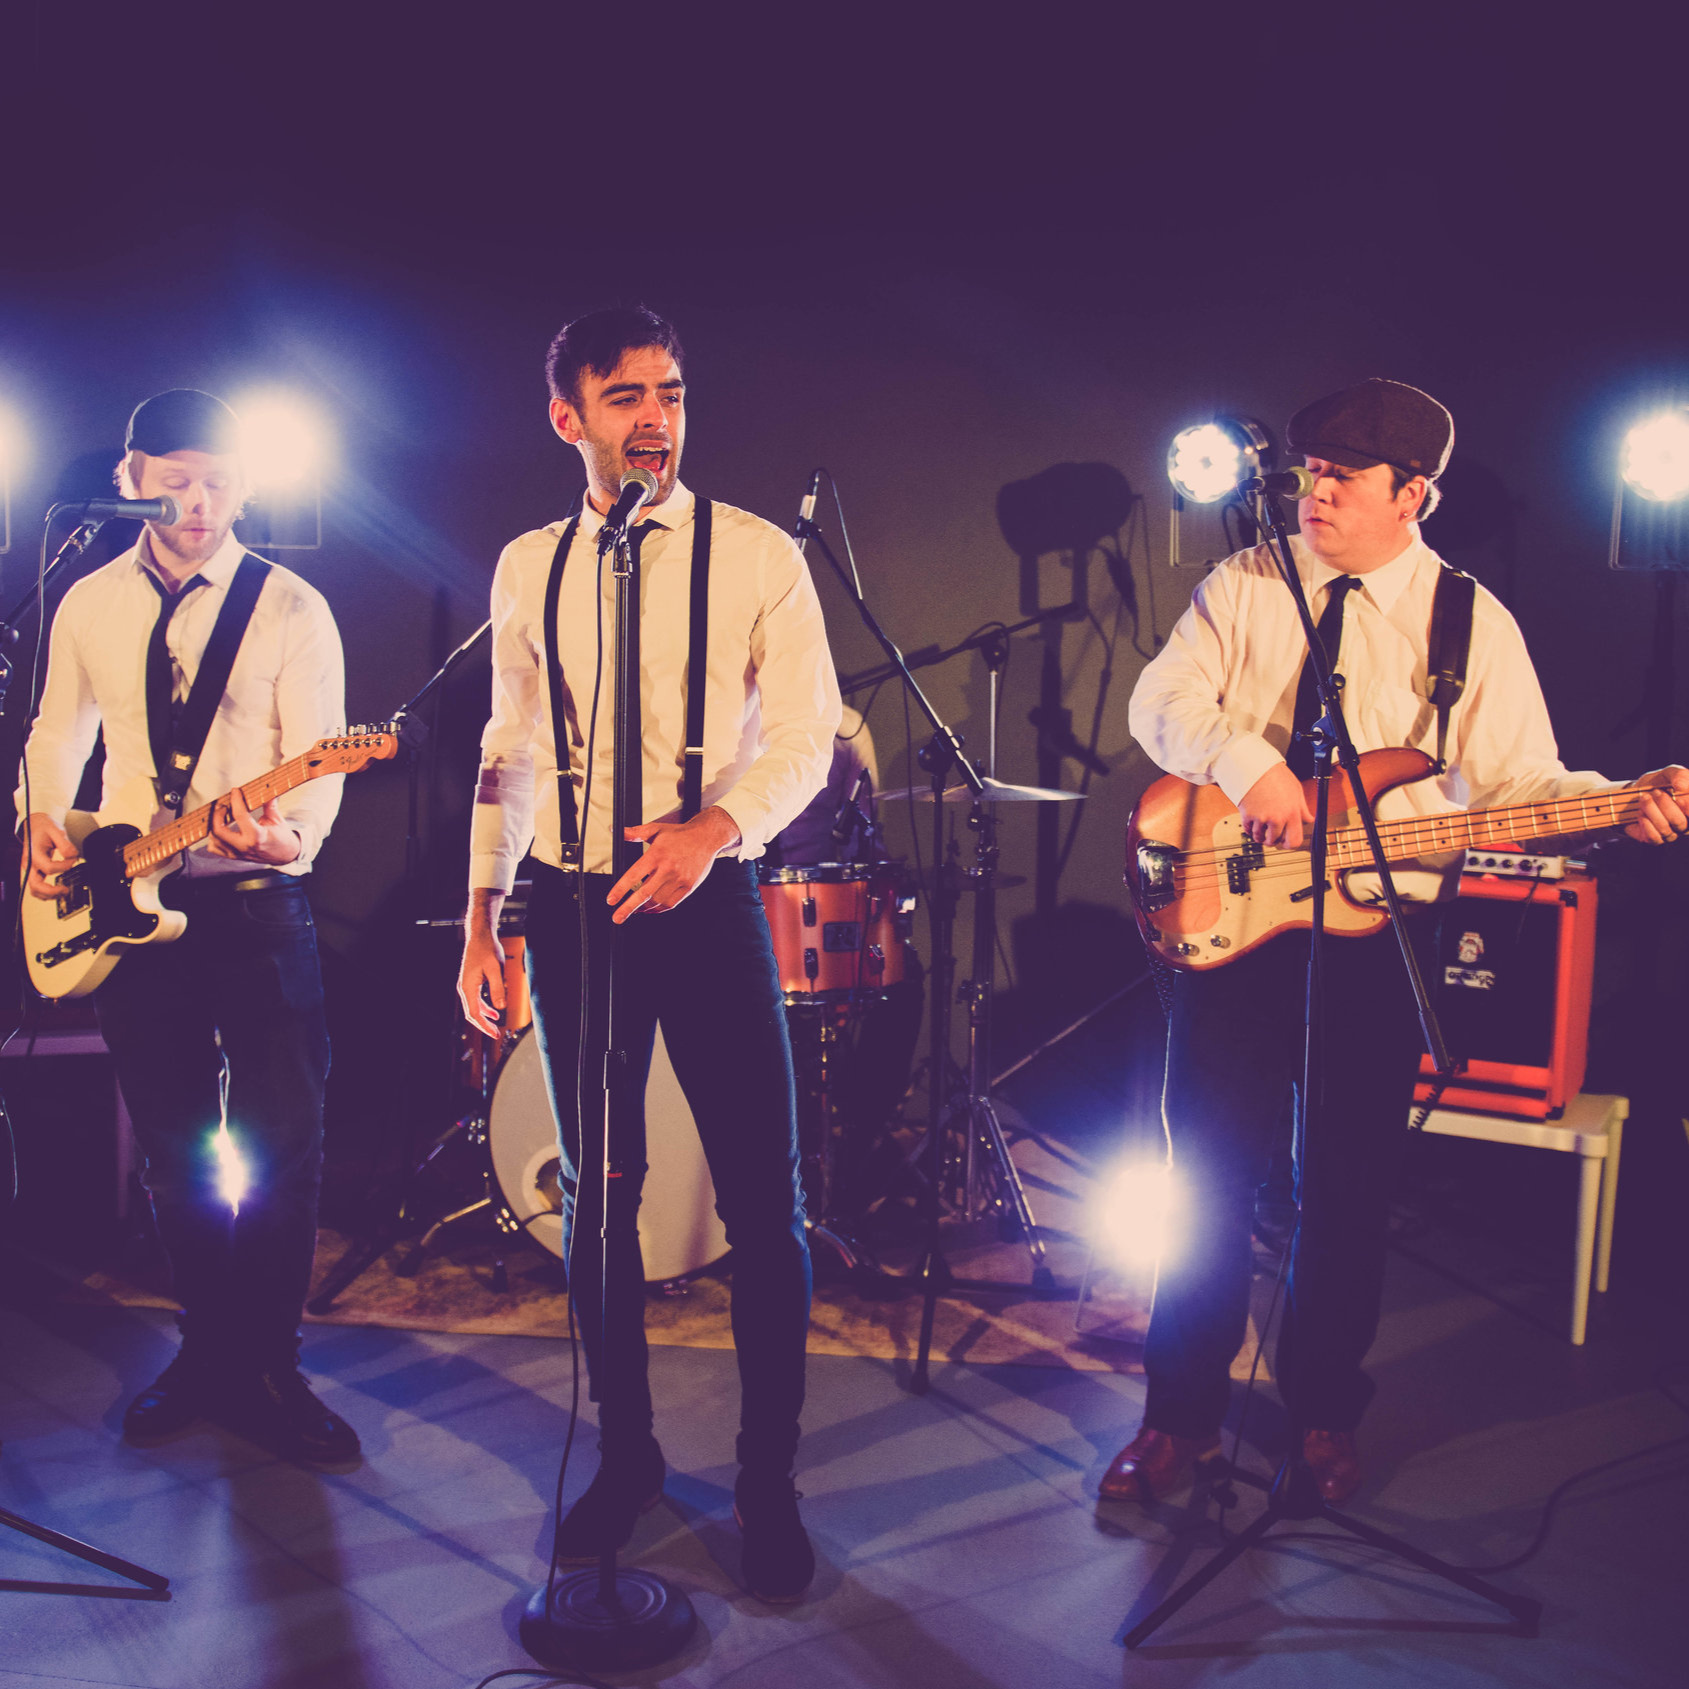 THE SWING - Sophisticated and stylish male fronted four-piece swing & pop band that will take you back in time with a varied repertoire including swing, pop and floor filling classics.